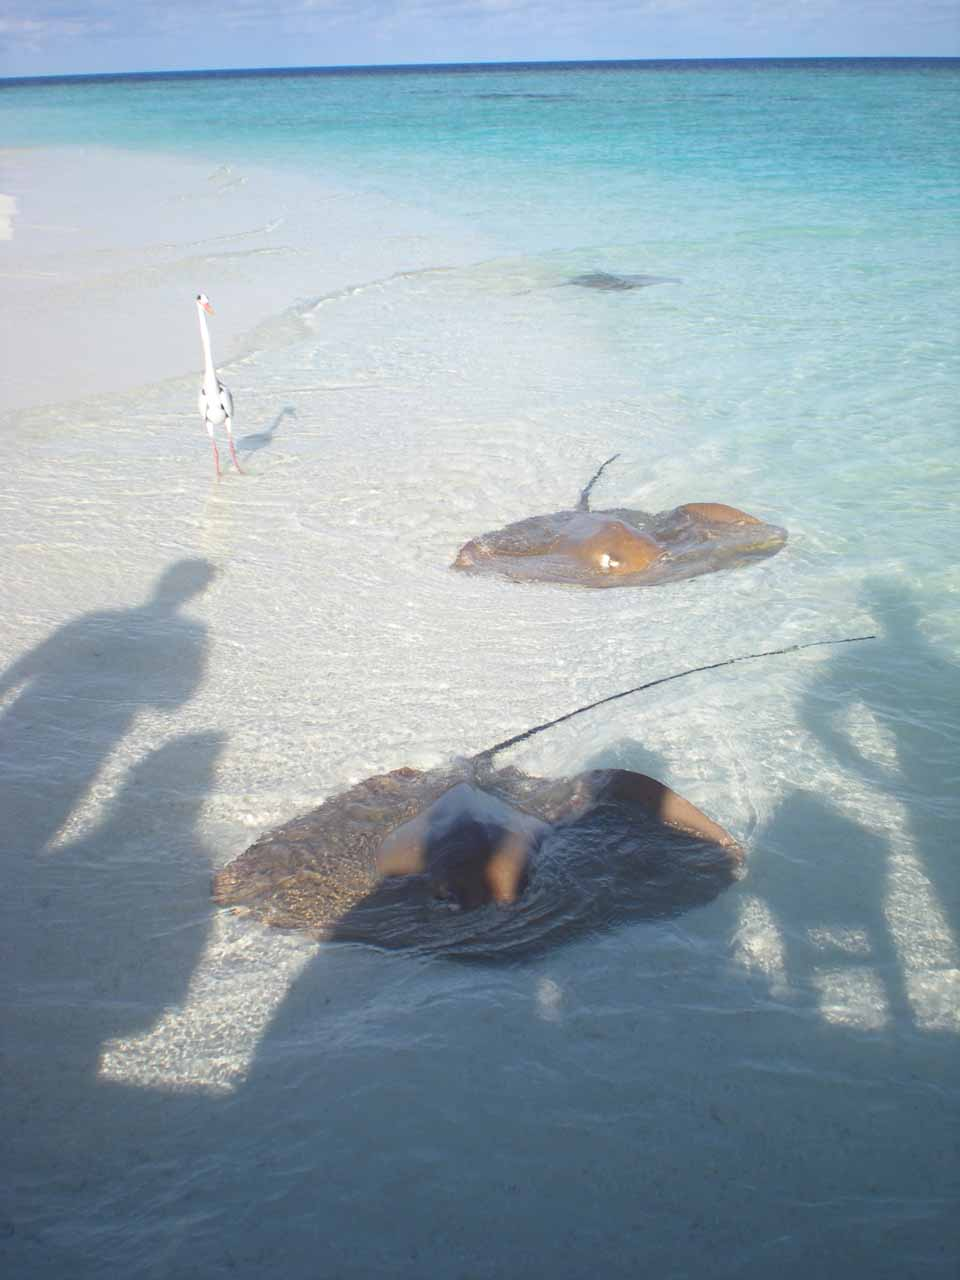 More stingrays waiting to be fed